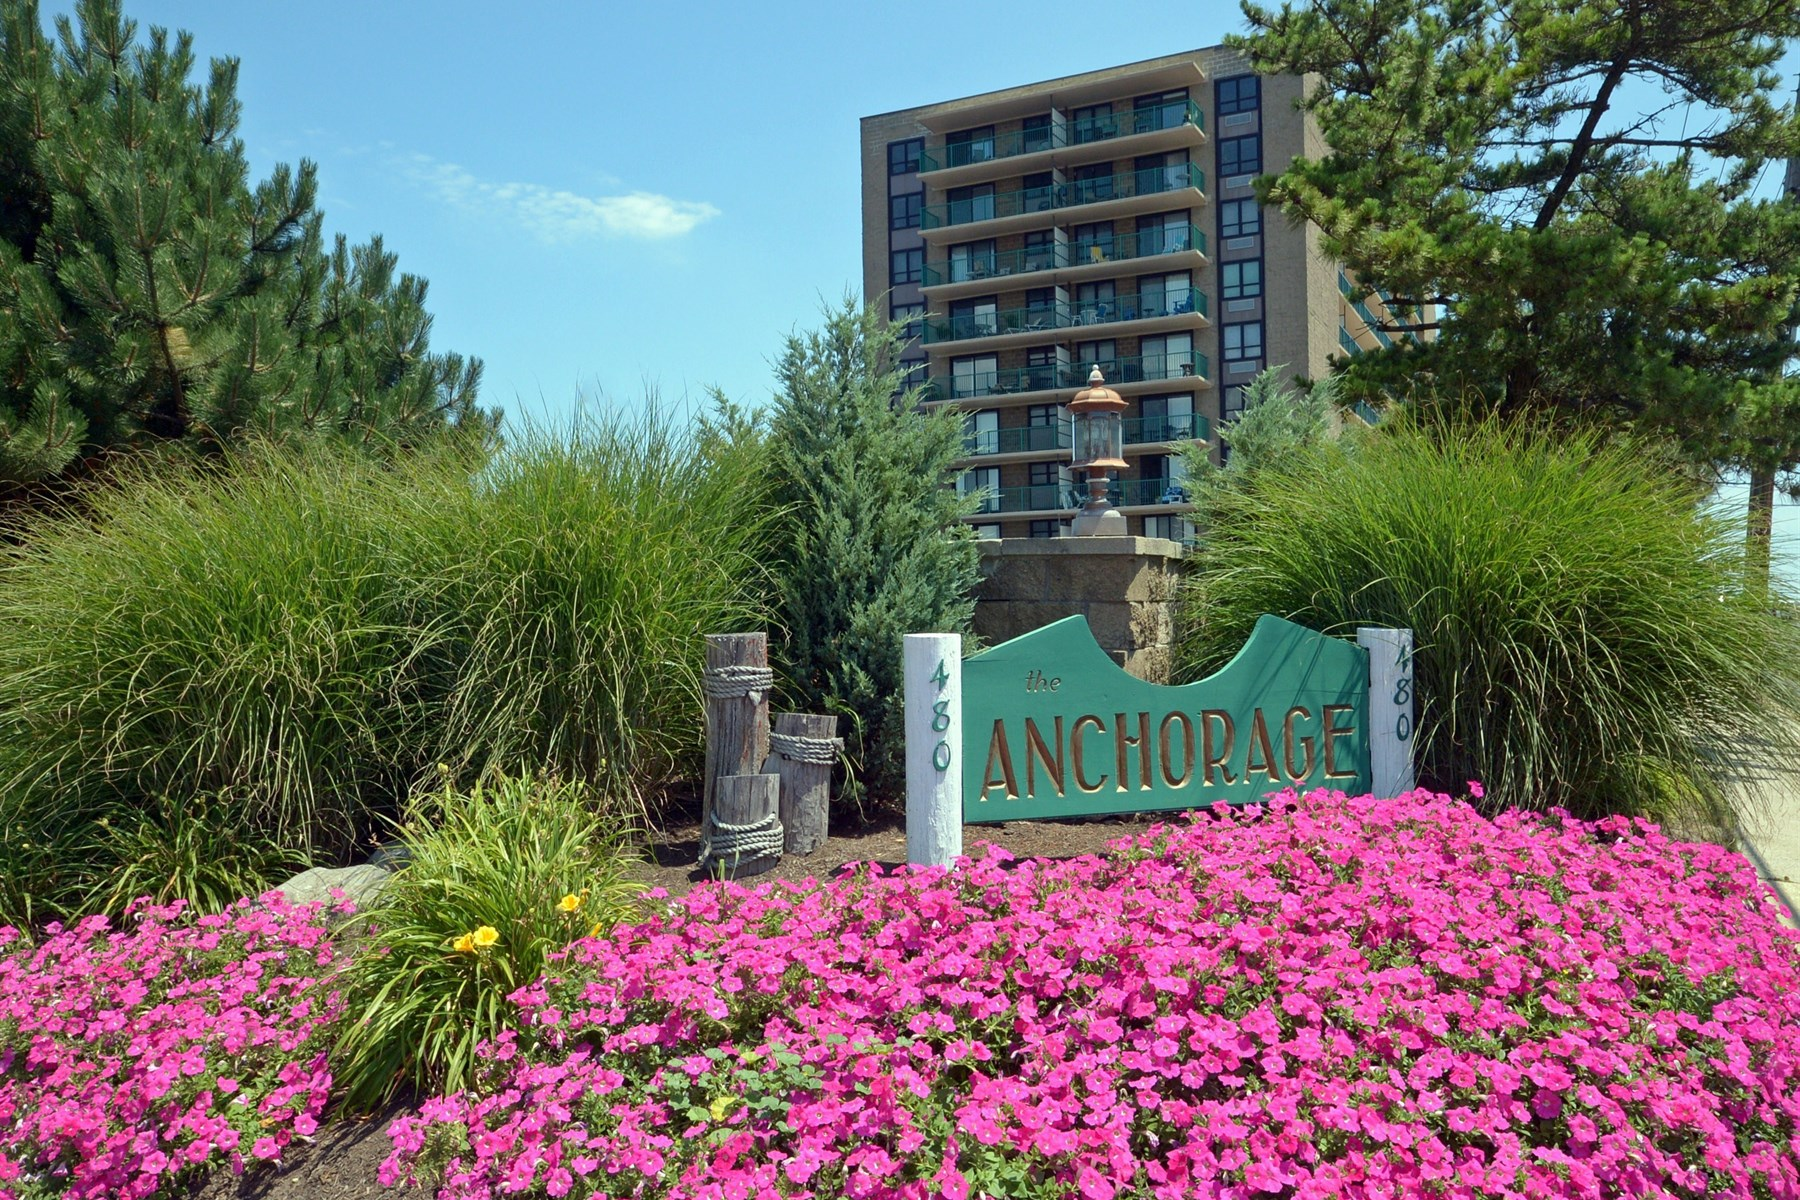 Condominium for Sale at The Anchorage 480- 1F Ocean Avenue Long Branch, New Jersey 07740 United States